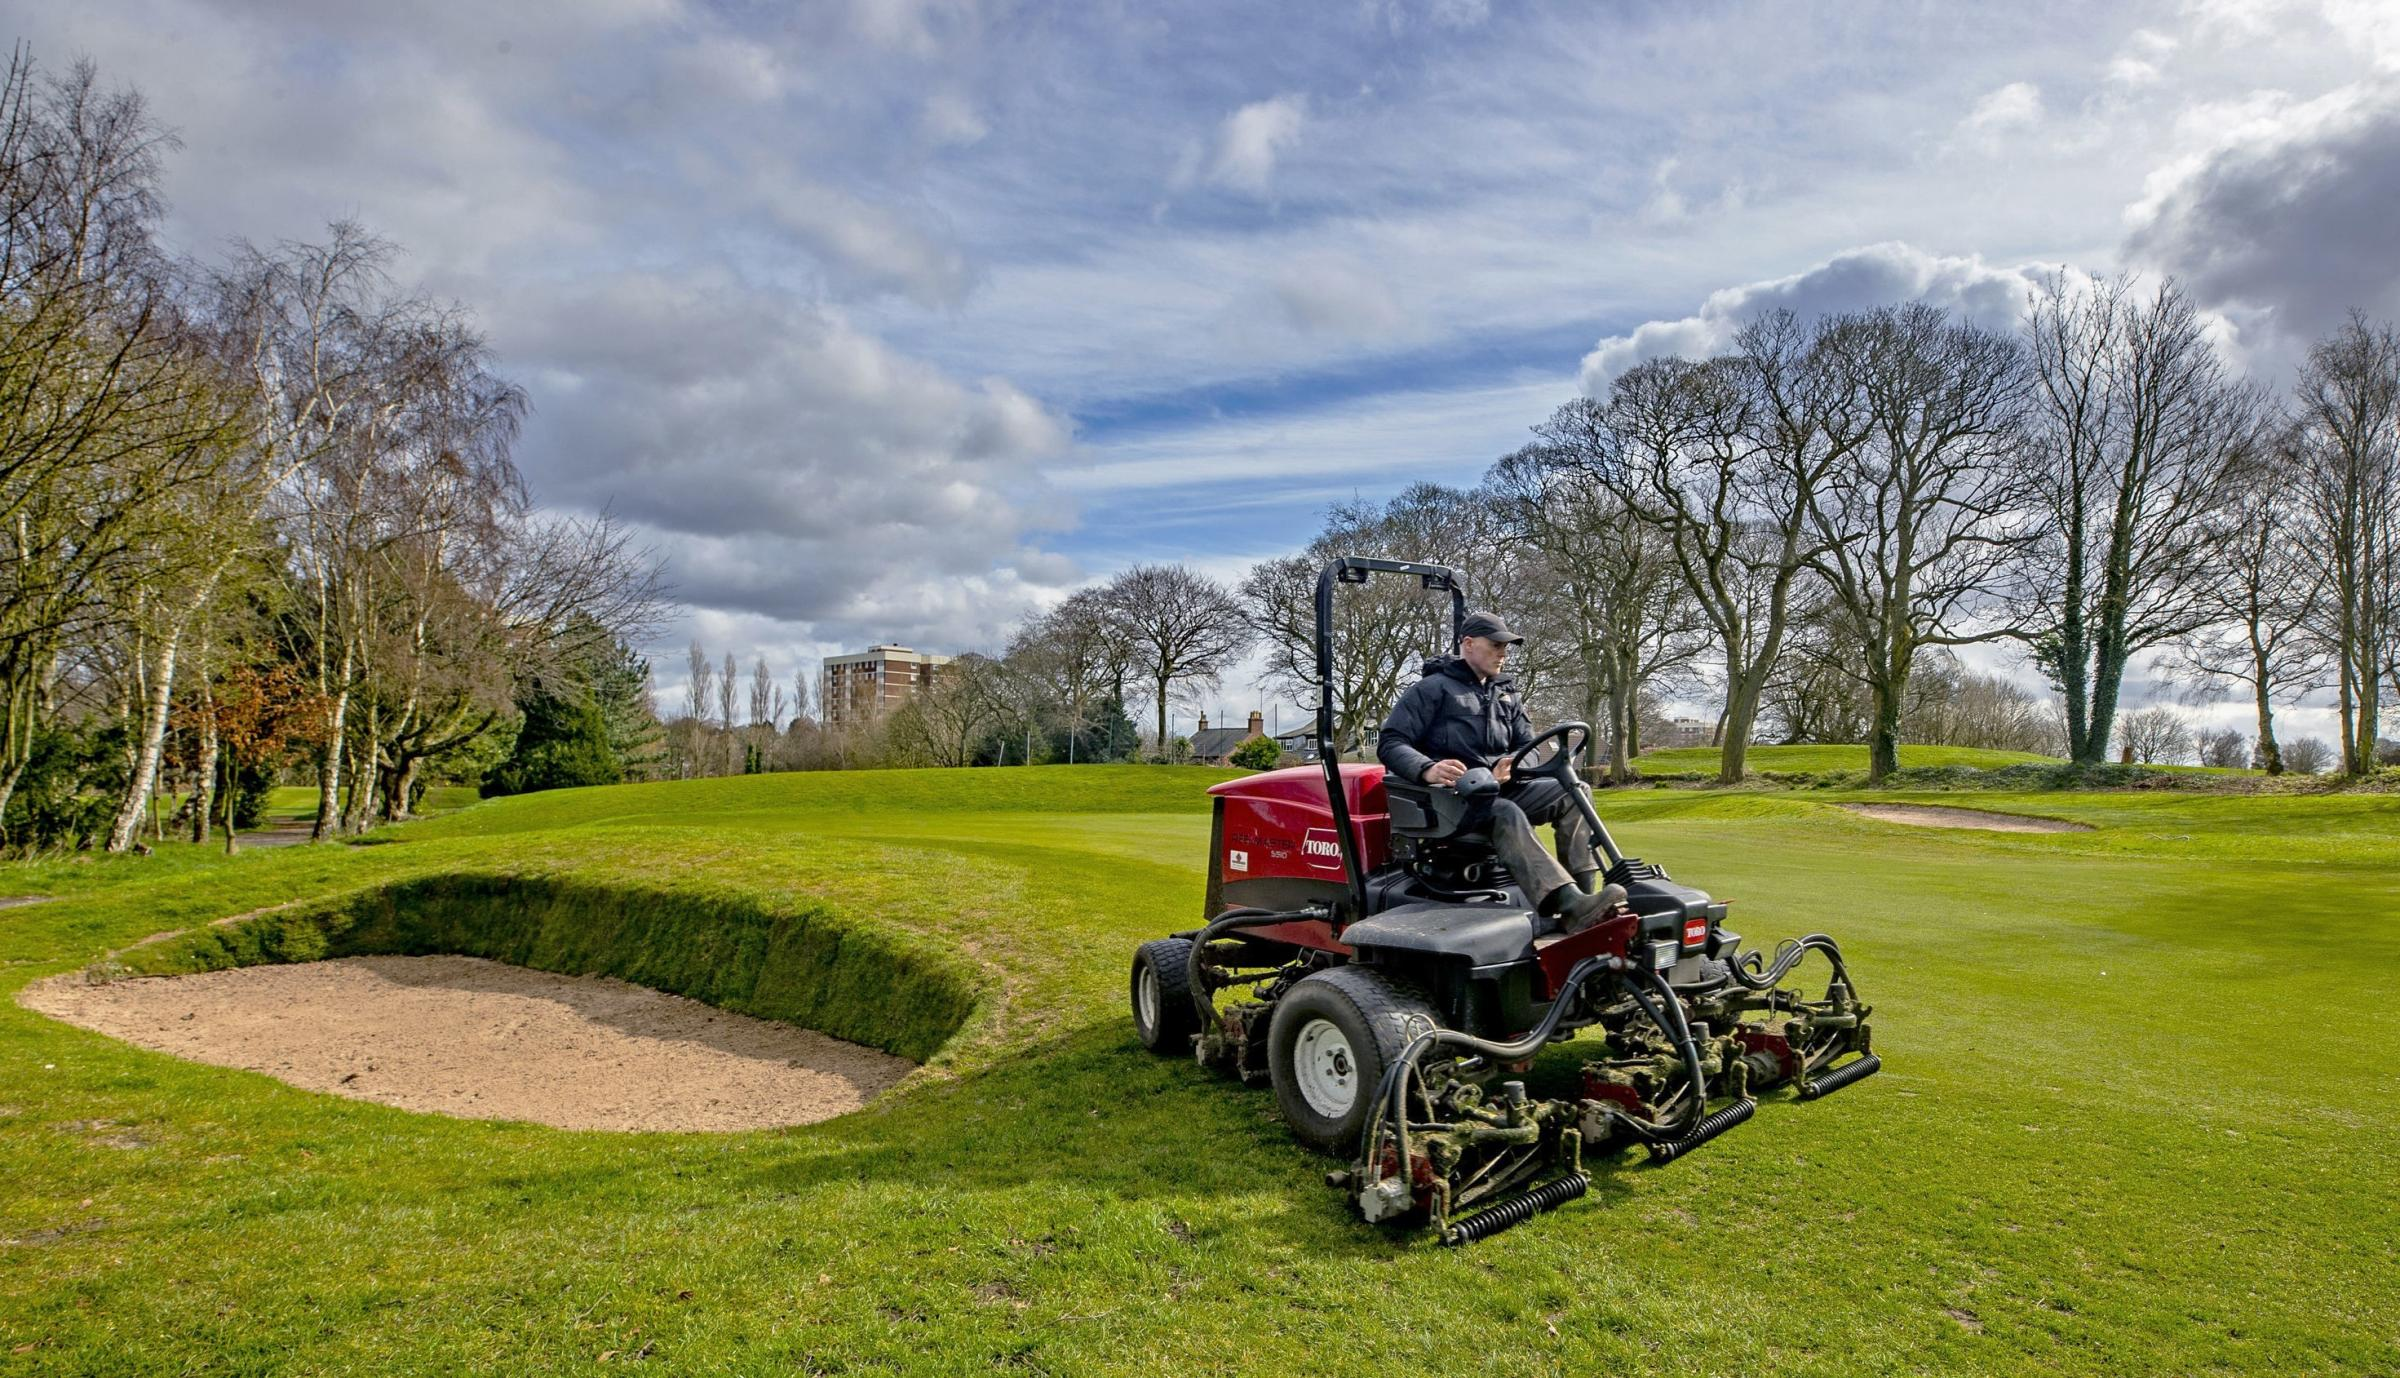 Green Keepers at Allerton Manor golf course in Liverpool prepare the course ahead of reopening on March 29 when further restrictions are eased in England's third national lockdown Picture: PETER BYRNE/PA